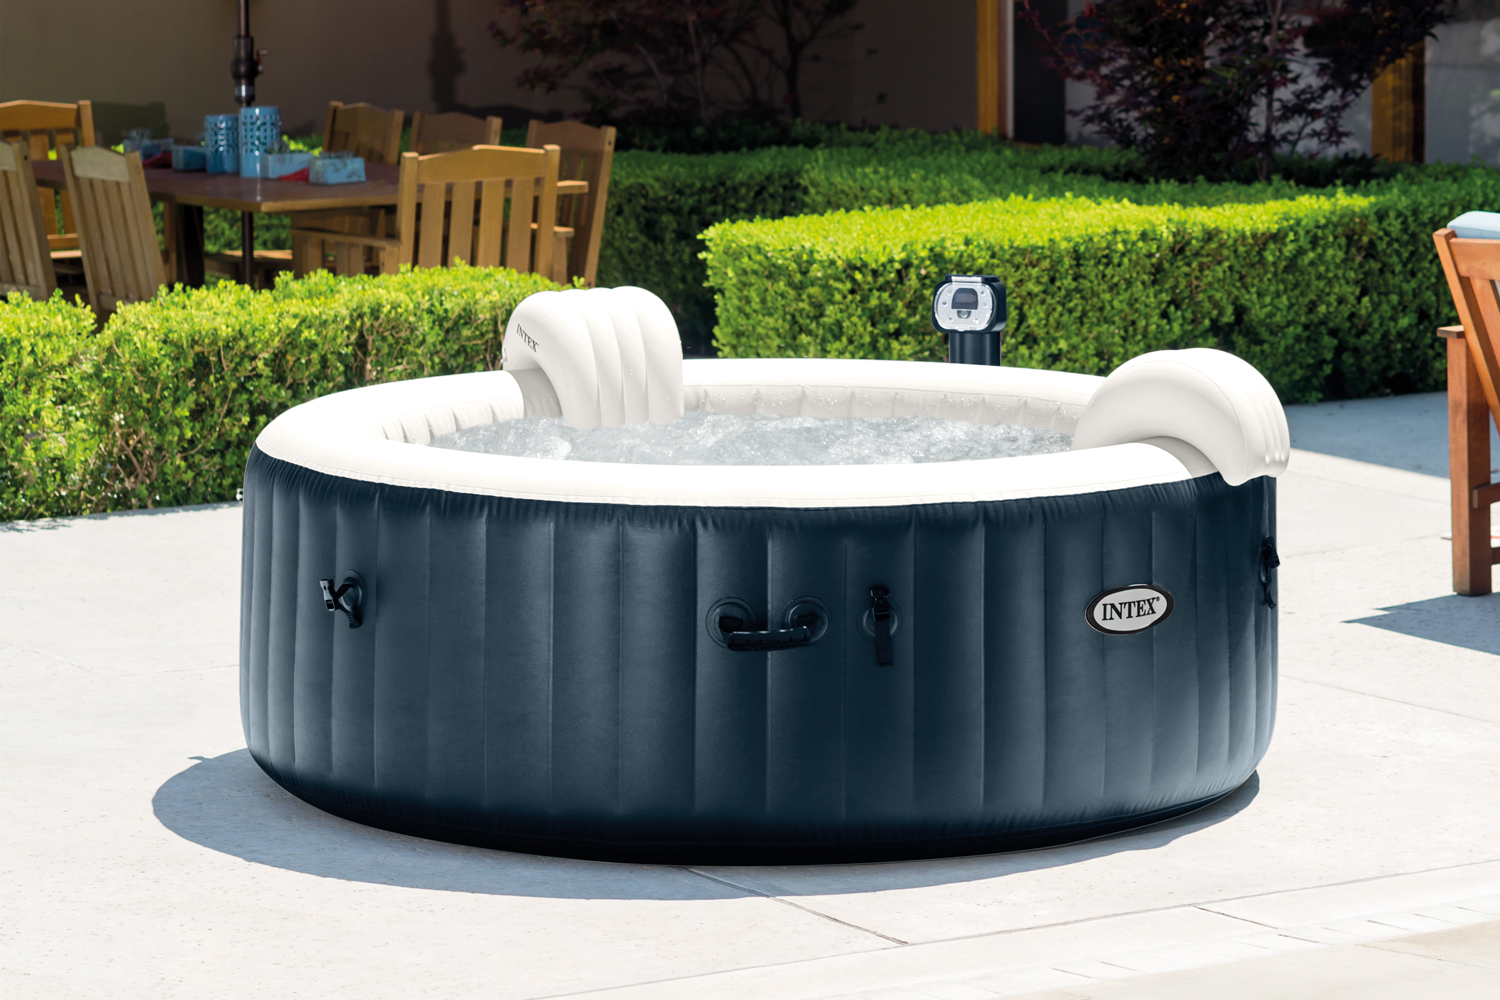 intex pure spa 6 person inflatable portable heated bubble. Black Bedroom Furniture Sets. Home Design Ideas